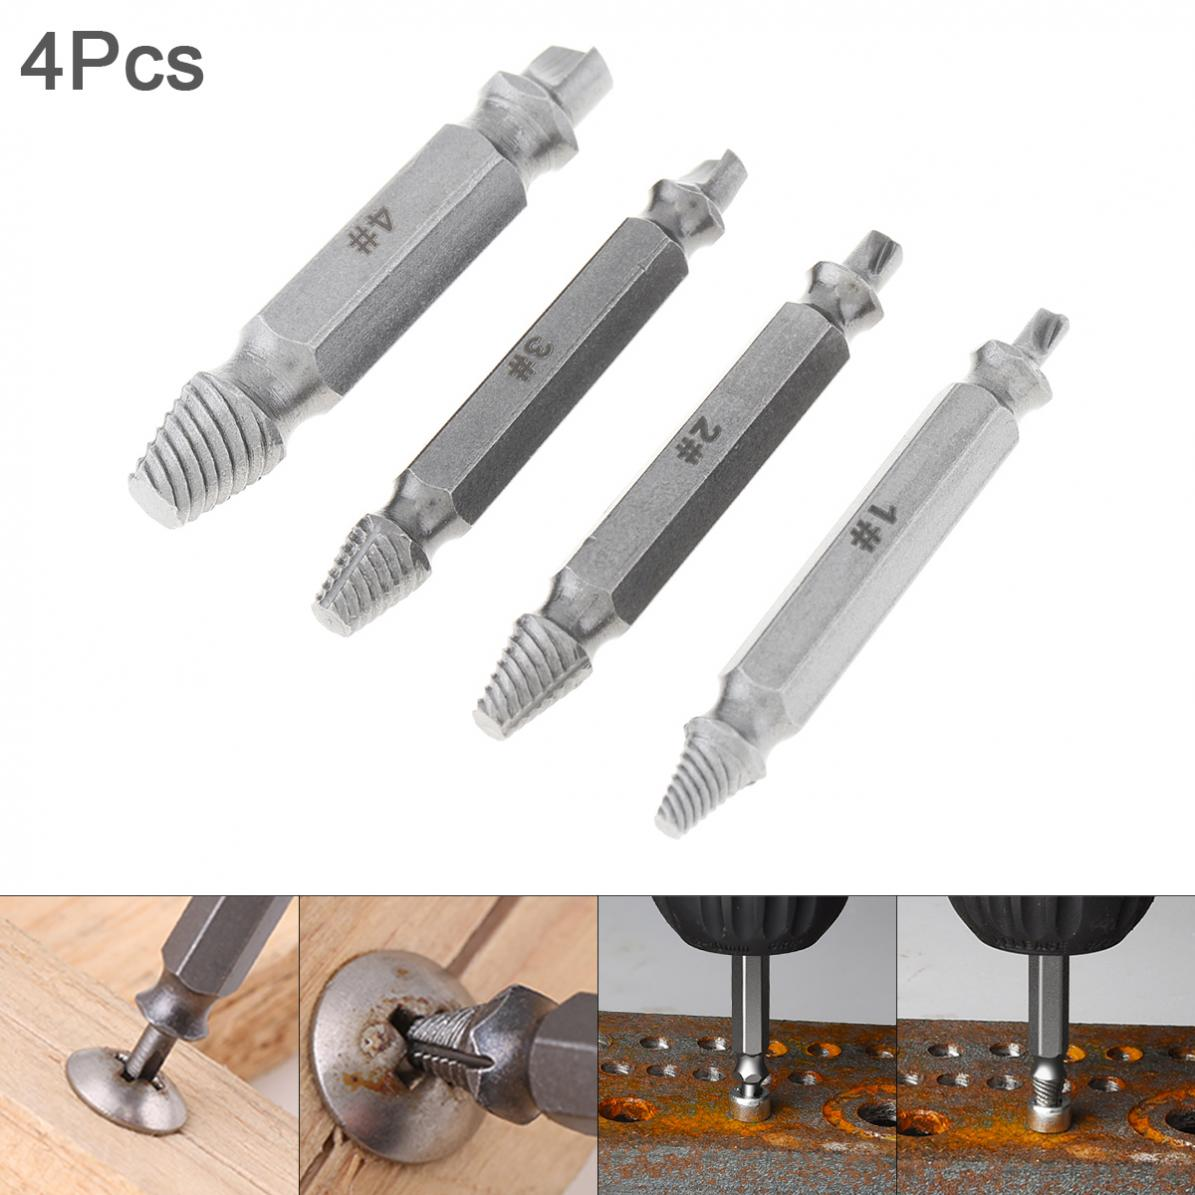 Bolt Remover S2 Alloy Steel Screw Extractor Drill Bit Tool With Hexagon Handle Damaged Screw Extracfor Broken Remover